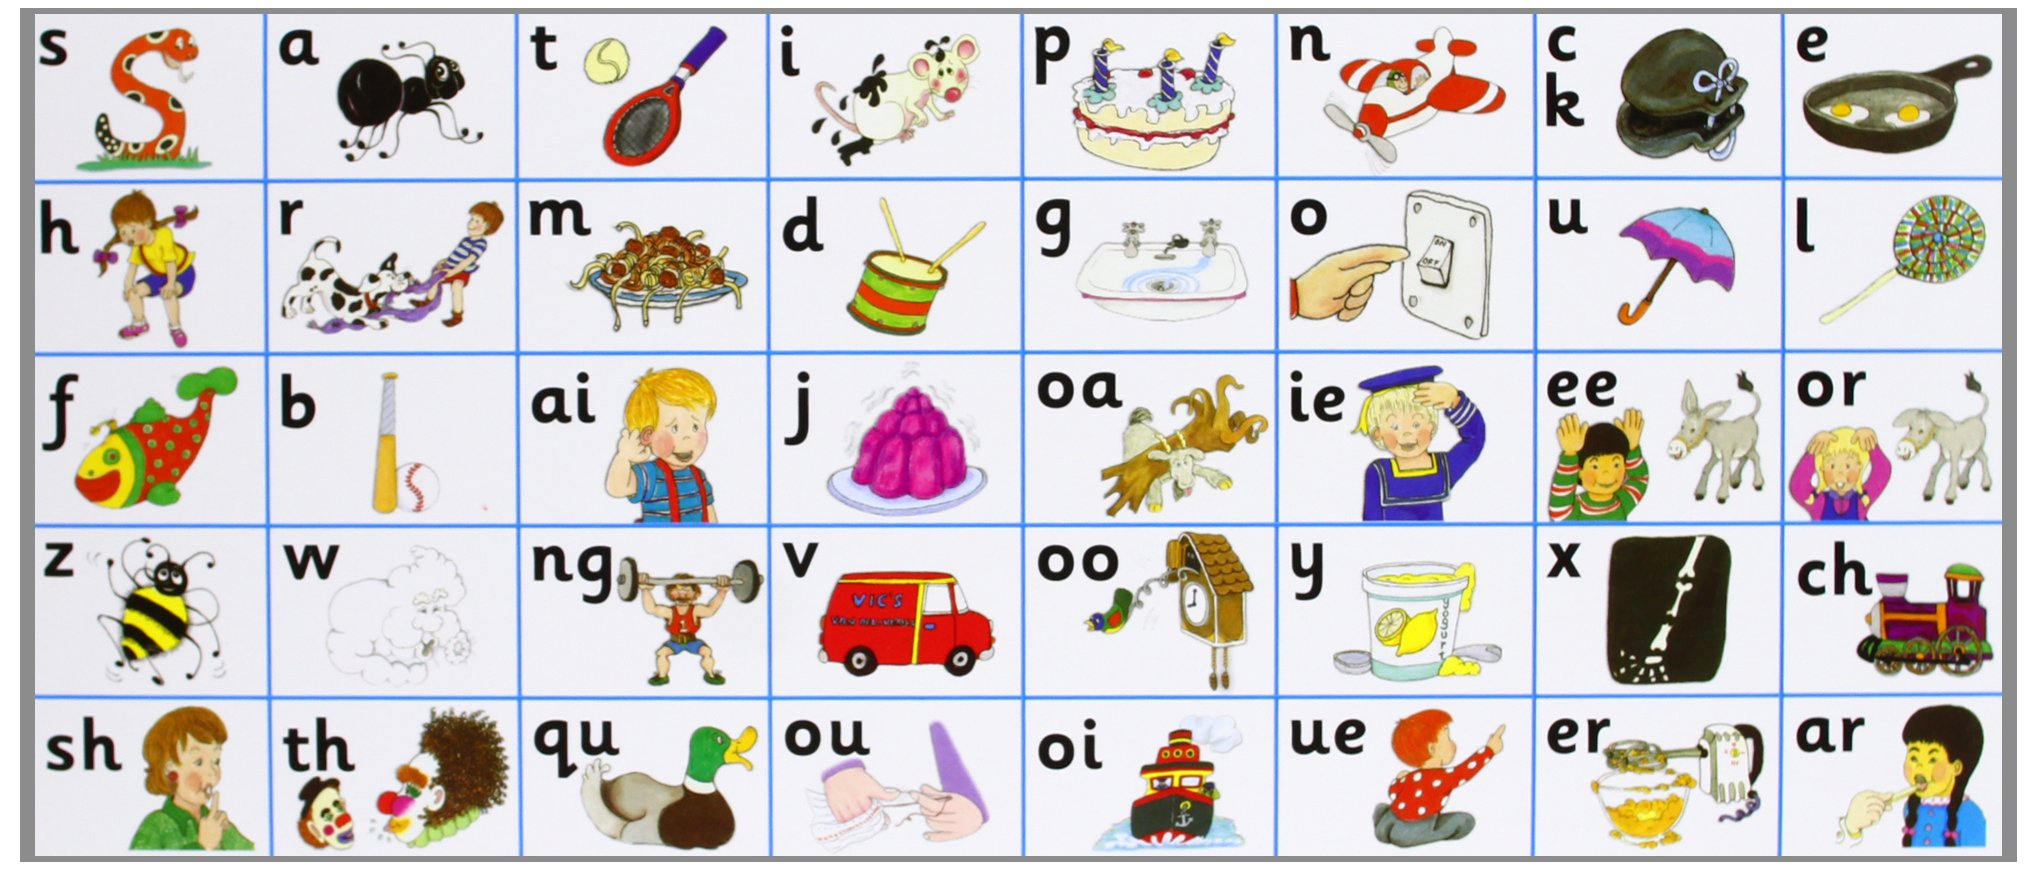 Phonic Sounds of Alphabets Jolly Phonics Letter Sound